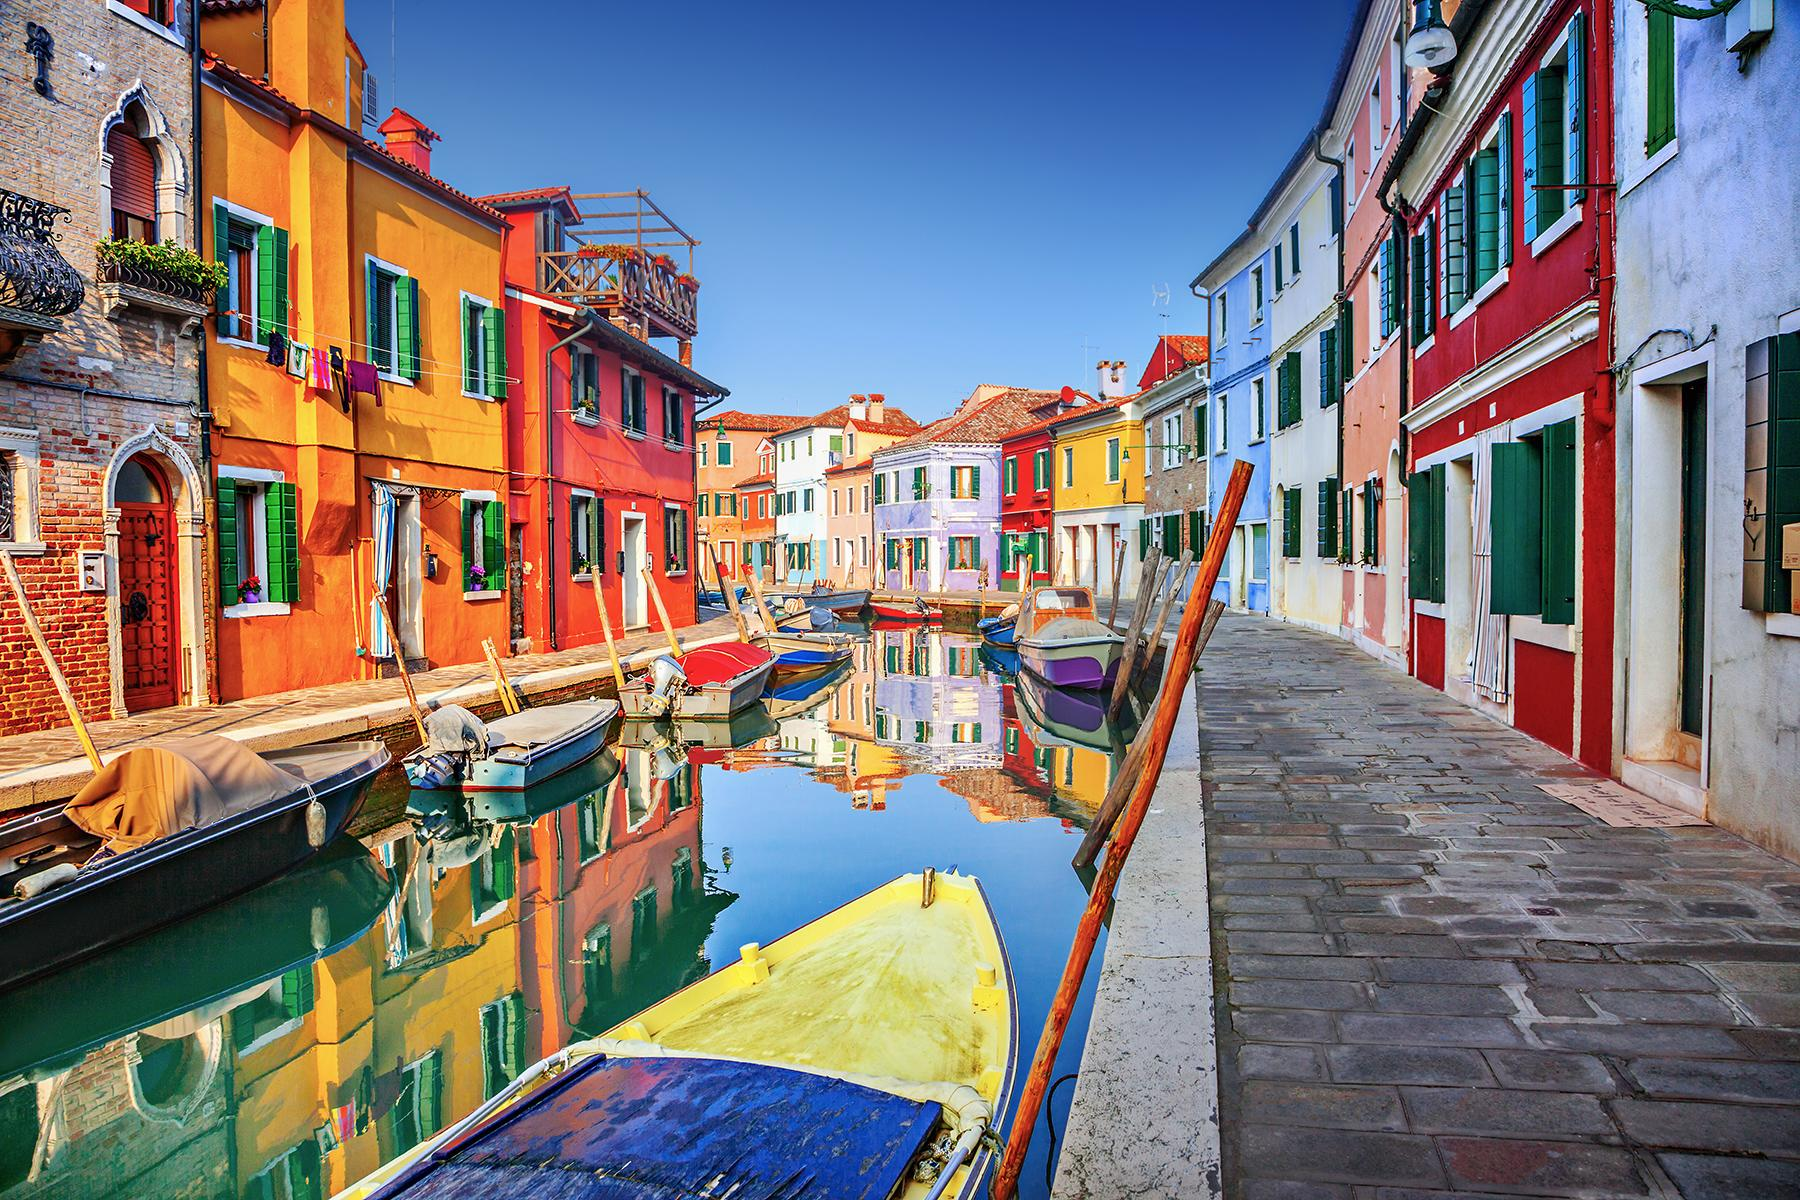 Guide to the Islands of Venice